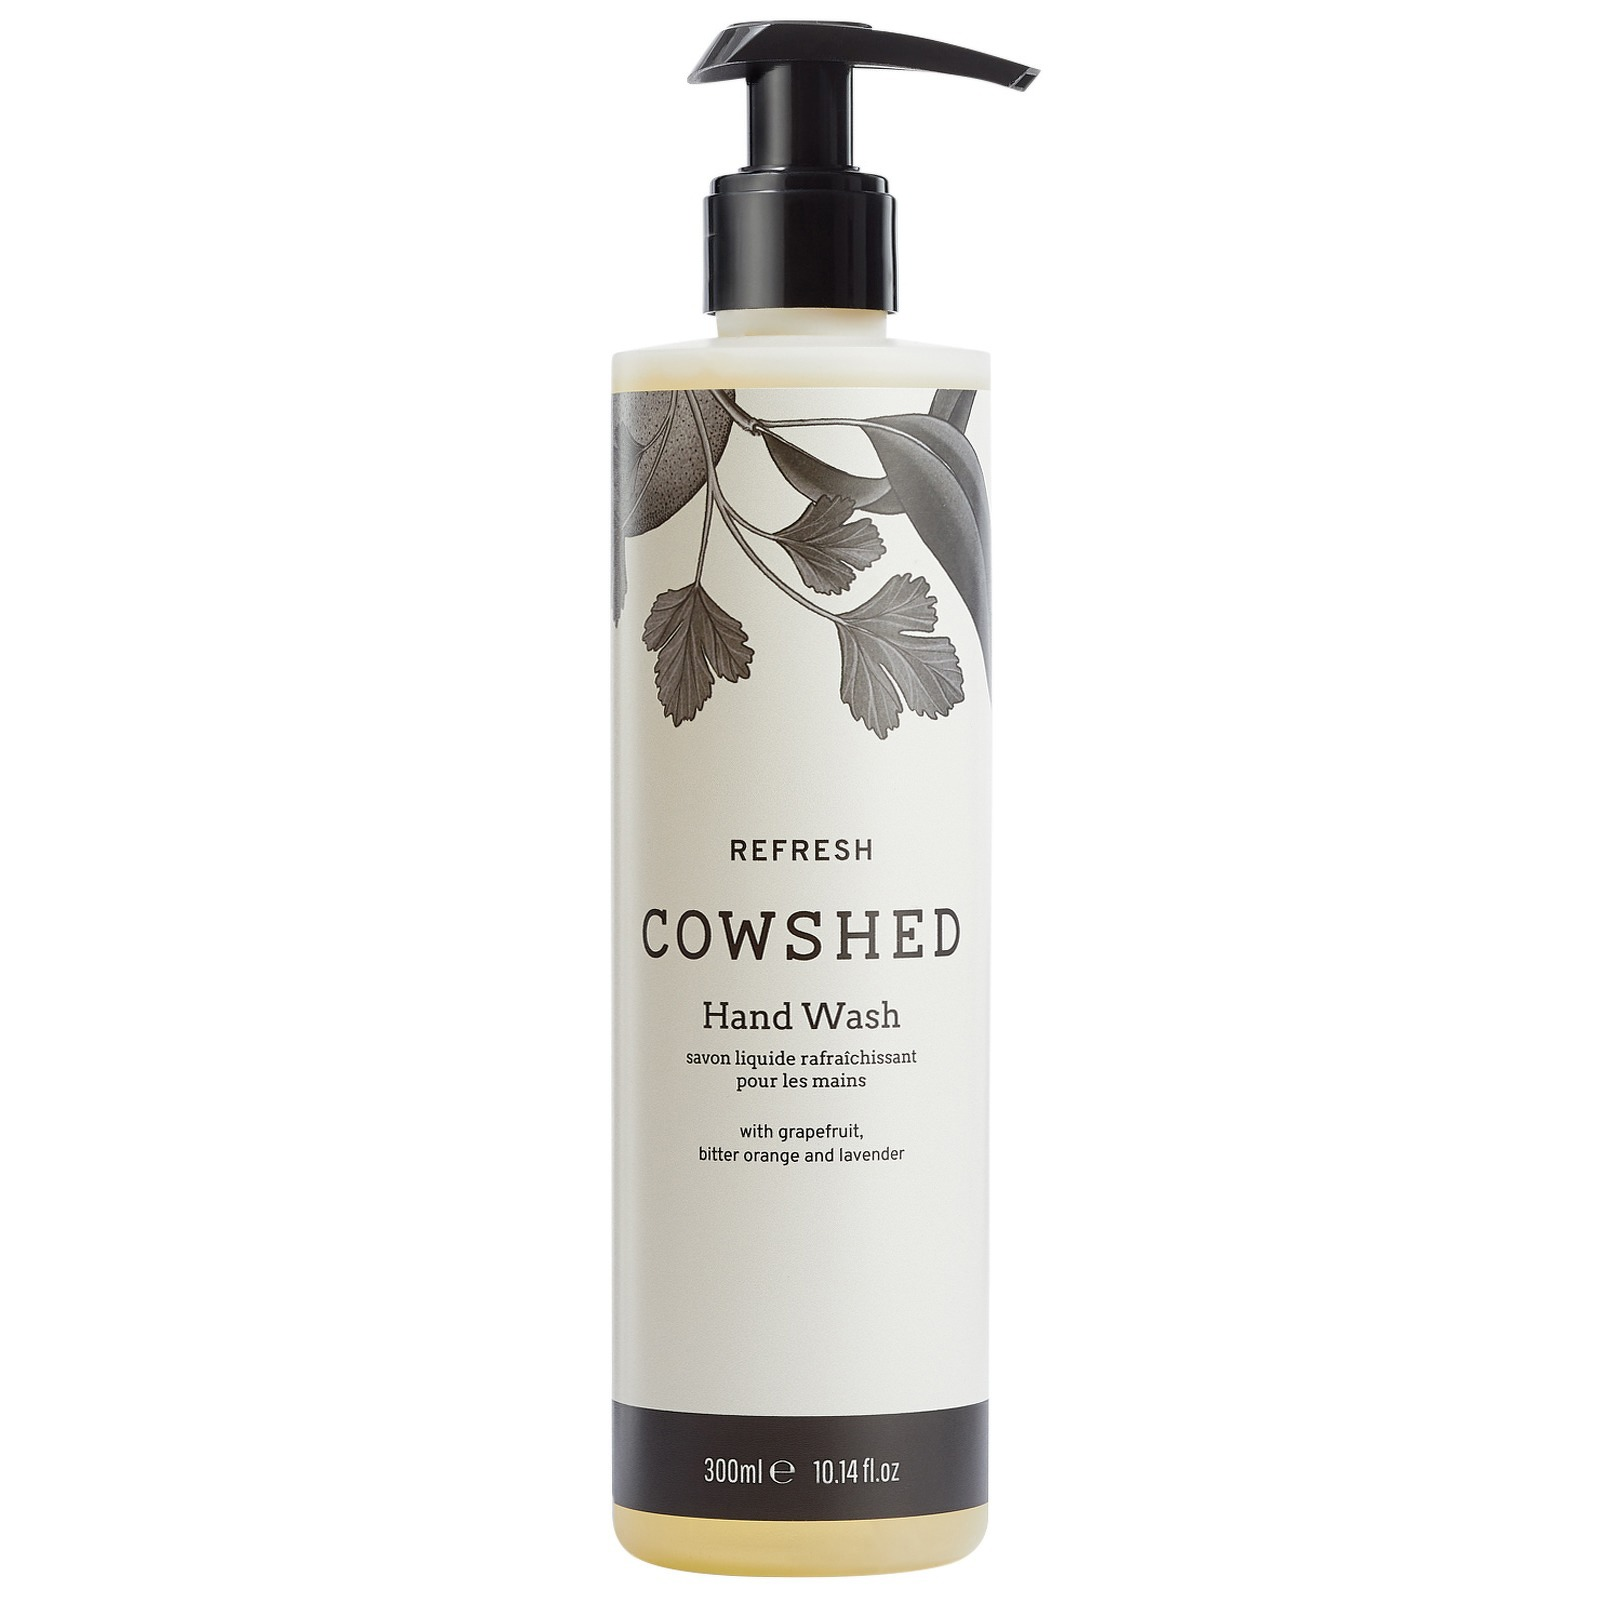 Cowshed Hands Refresh Hand Wash 300ml